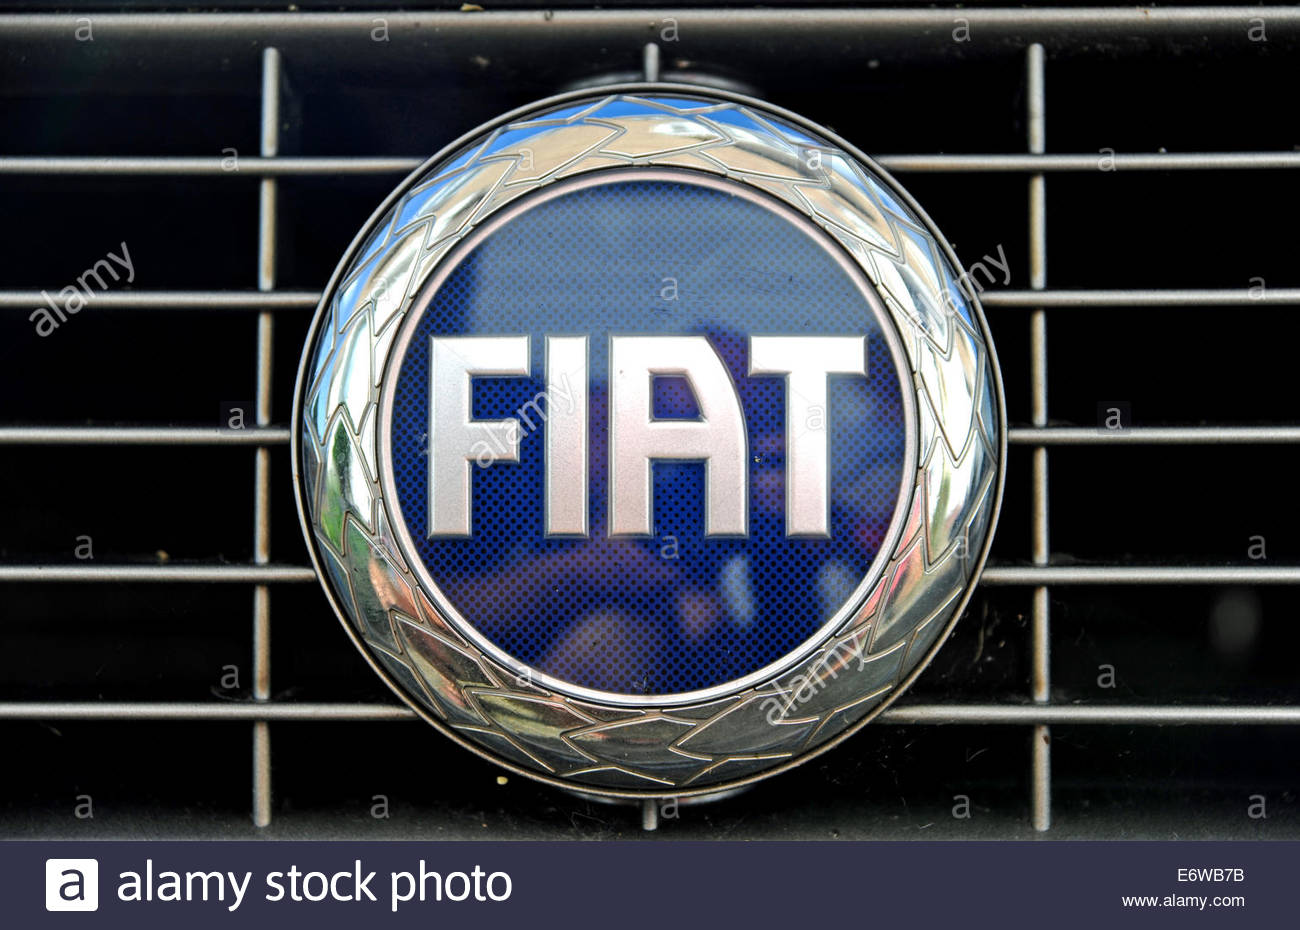 Fiat Badge High Resolution Stock Photography And Images Alamy